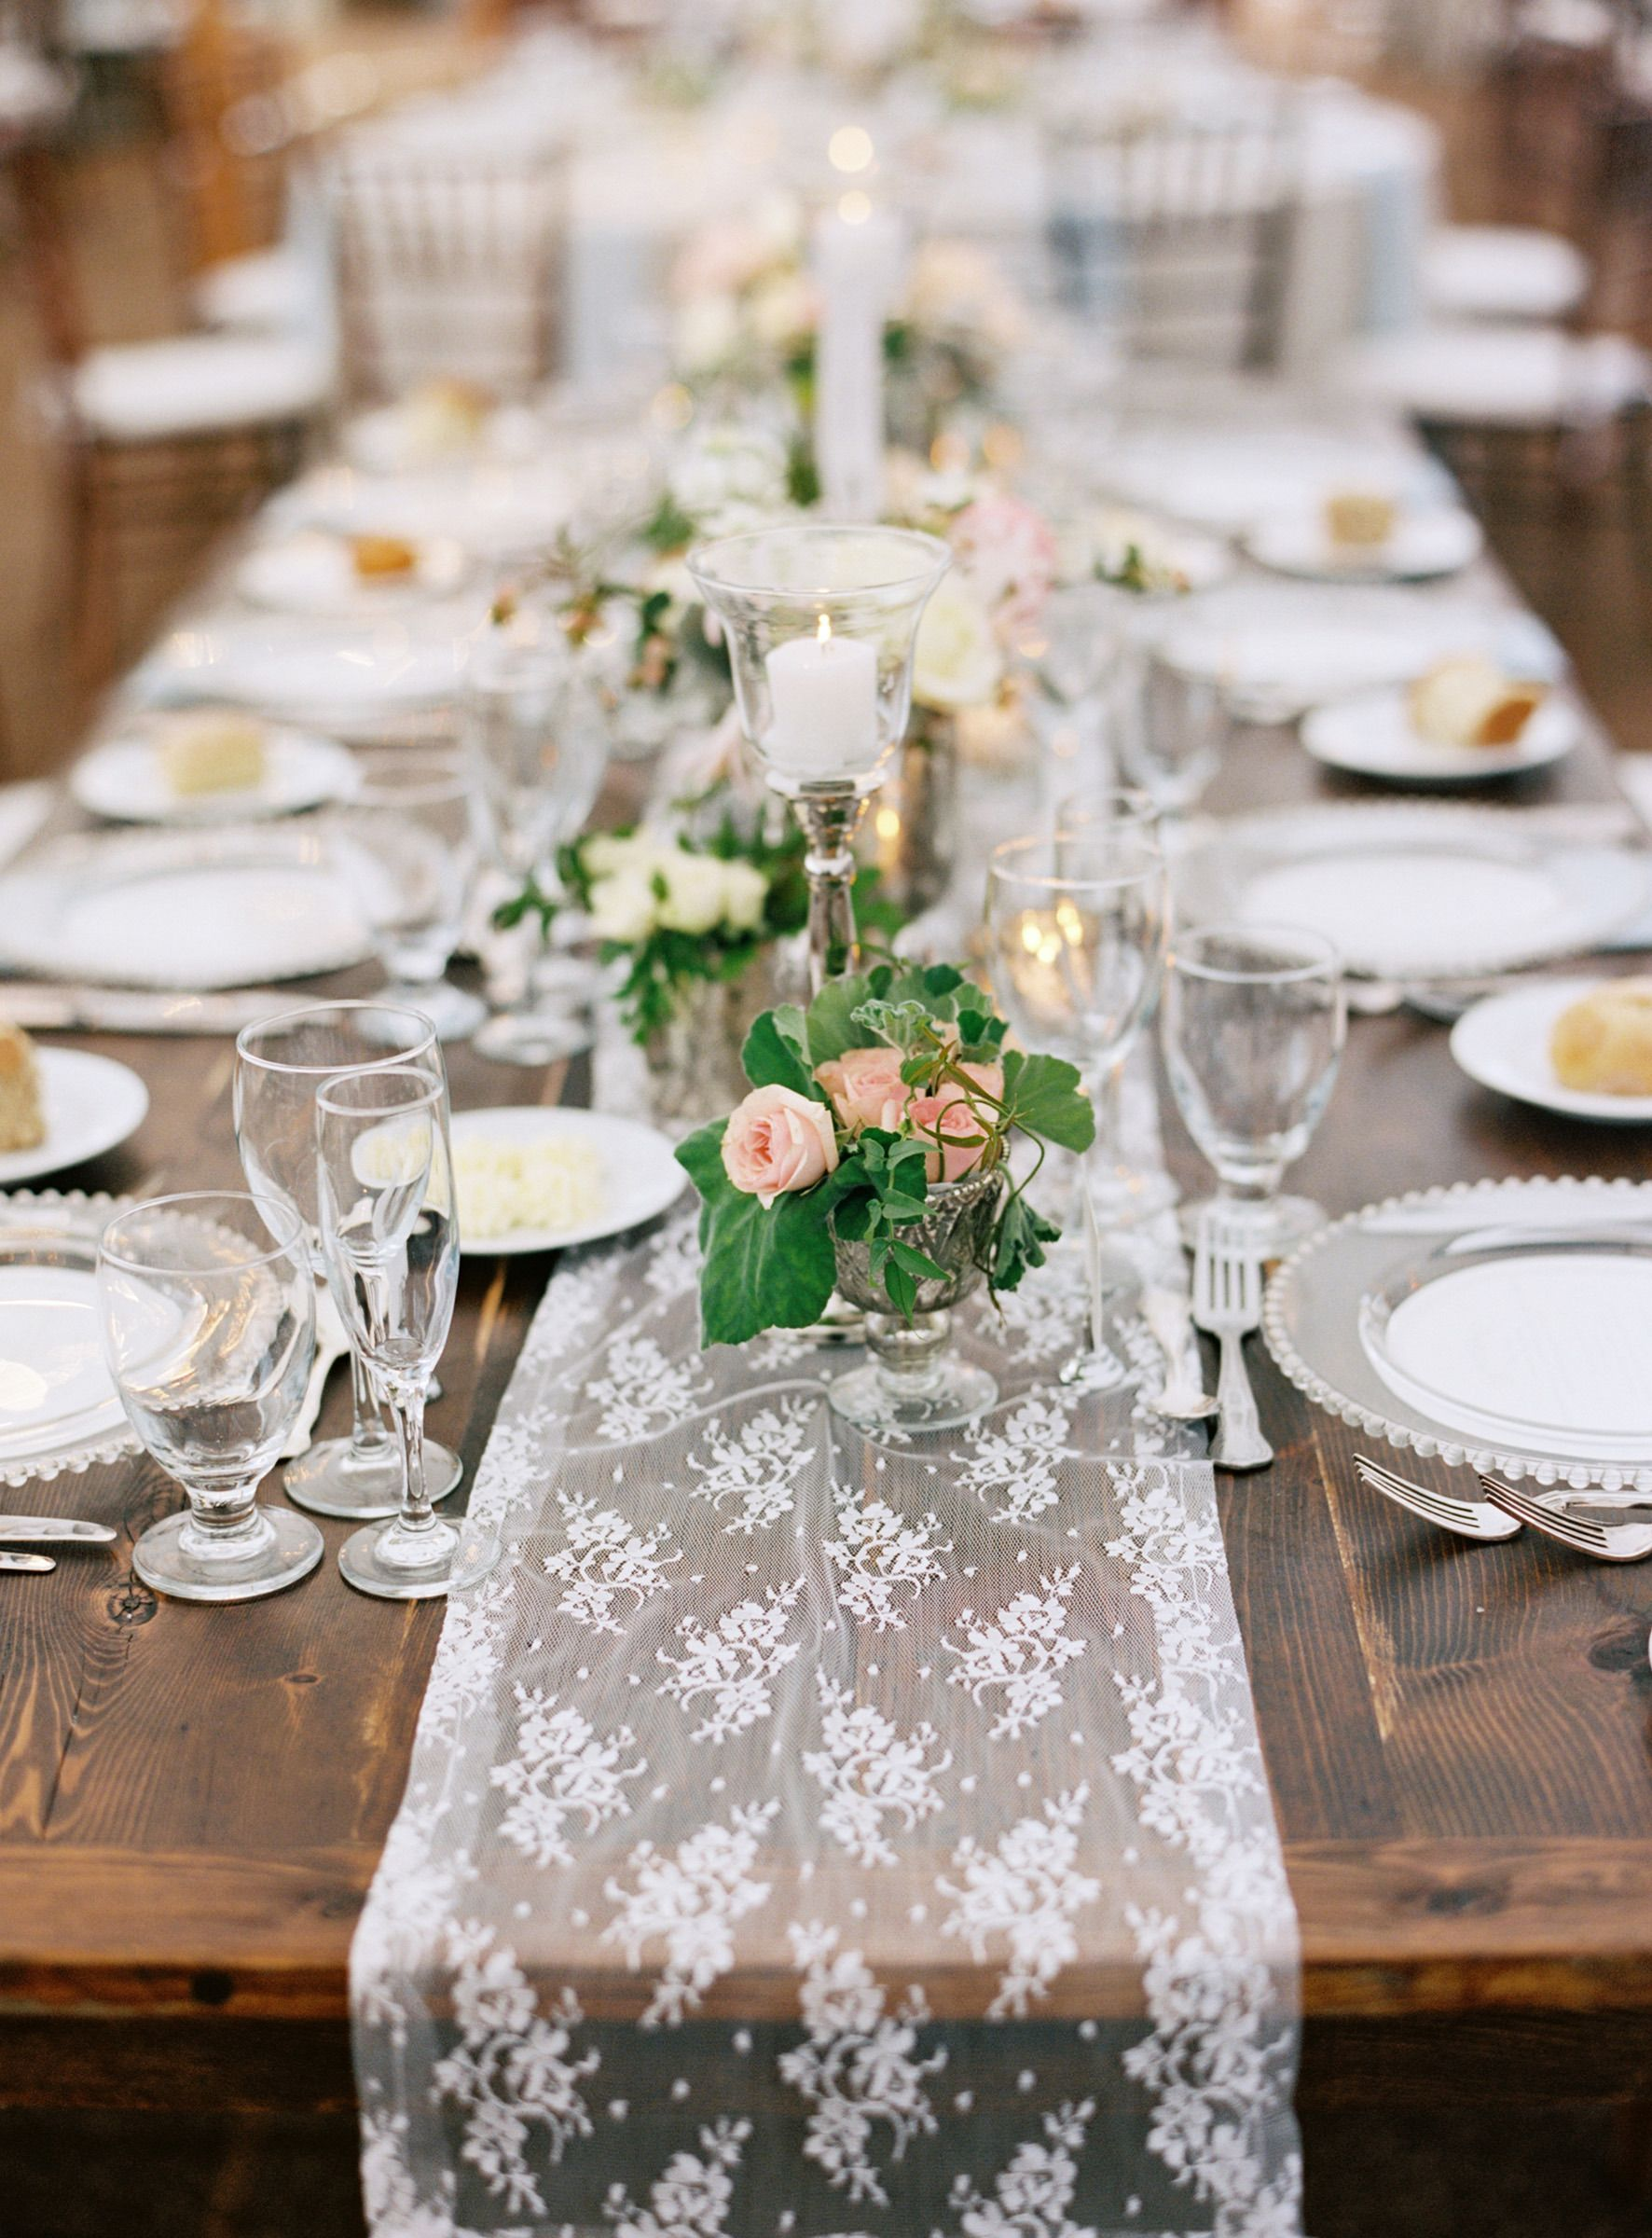 Lace Table Runner Beautiful Over A Rustic Wooden At Wedding Reception Or Dinner Party